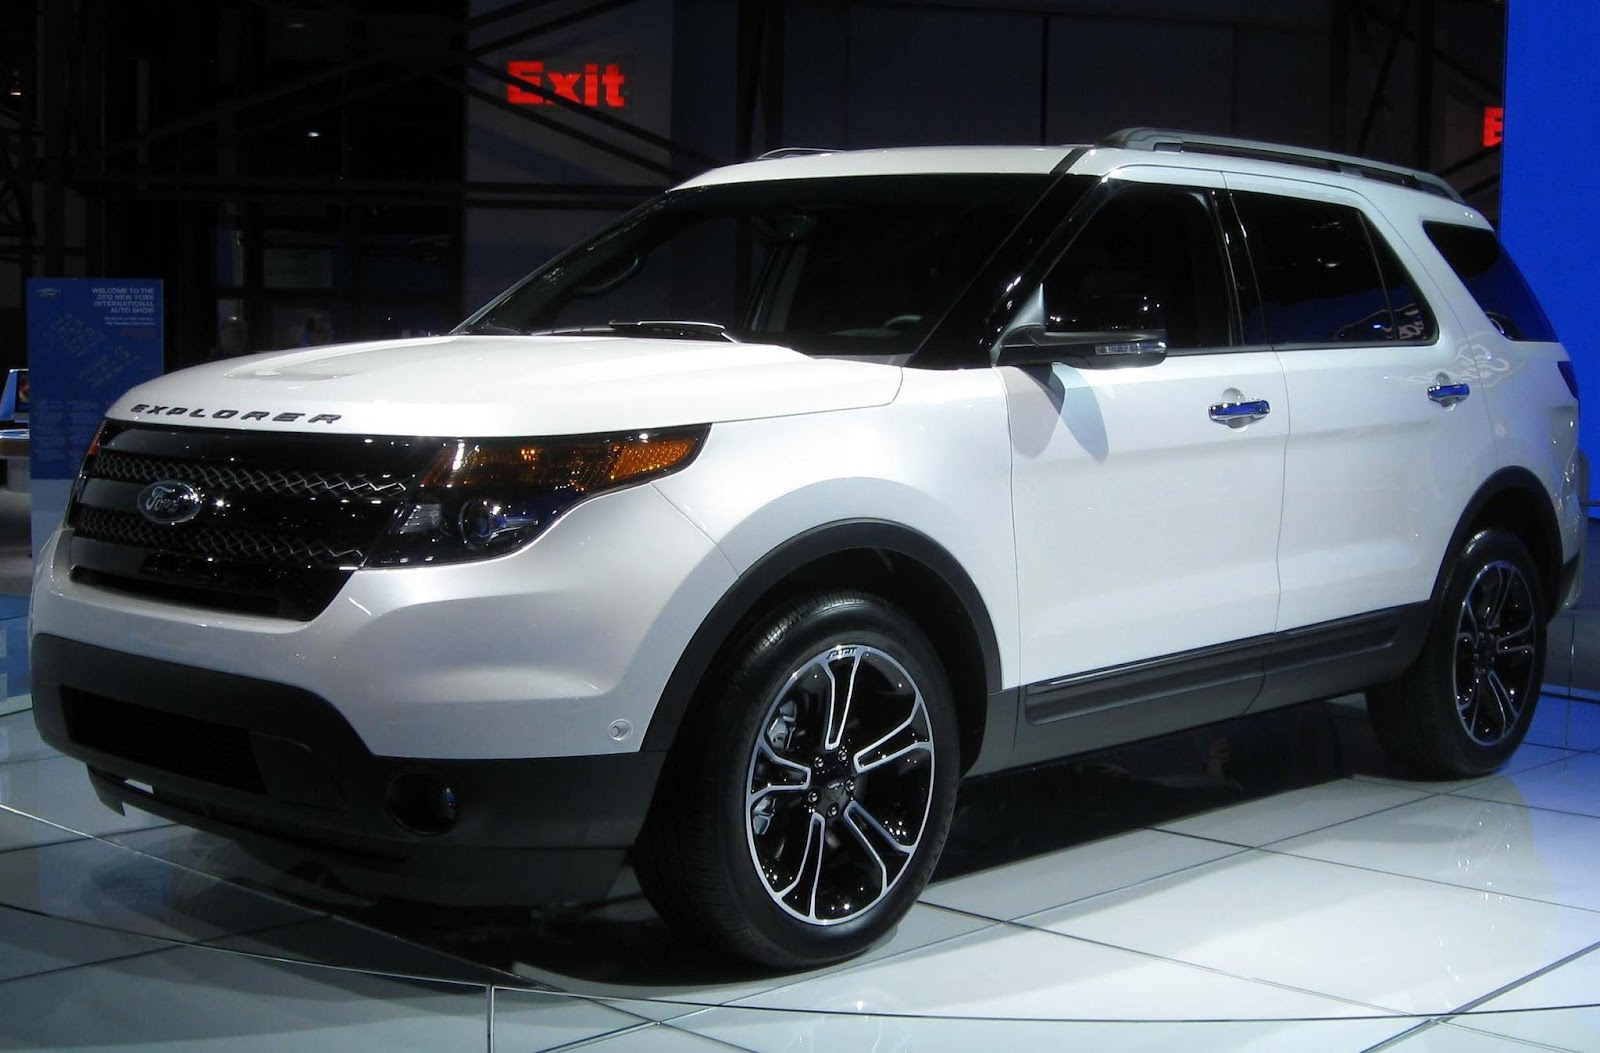 Cars With 3rd Row Seating >> New Explorer Have 3rd Row Seating I 5 Cars